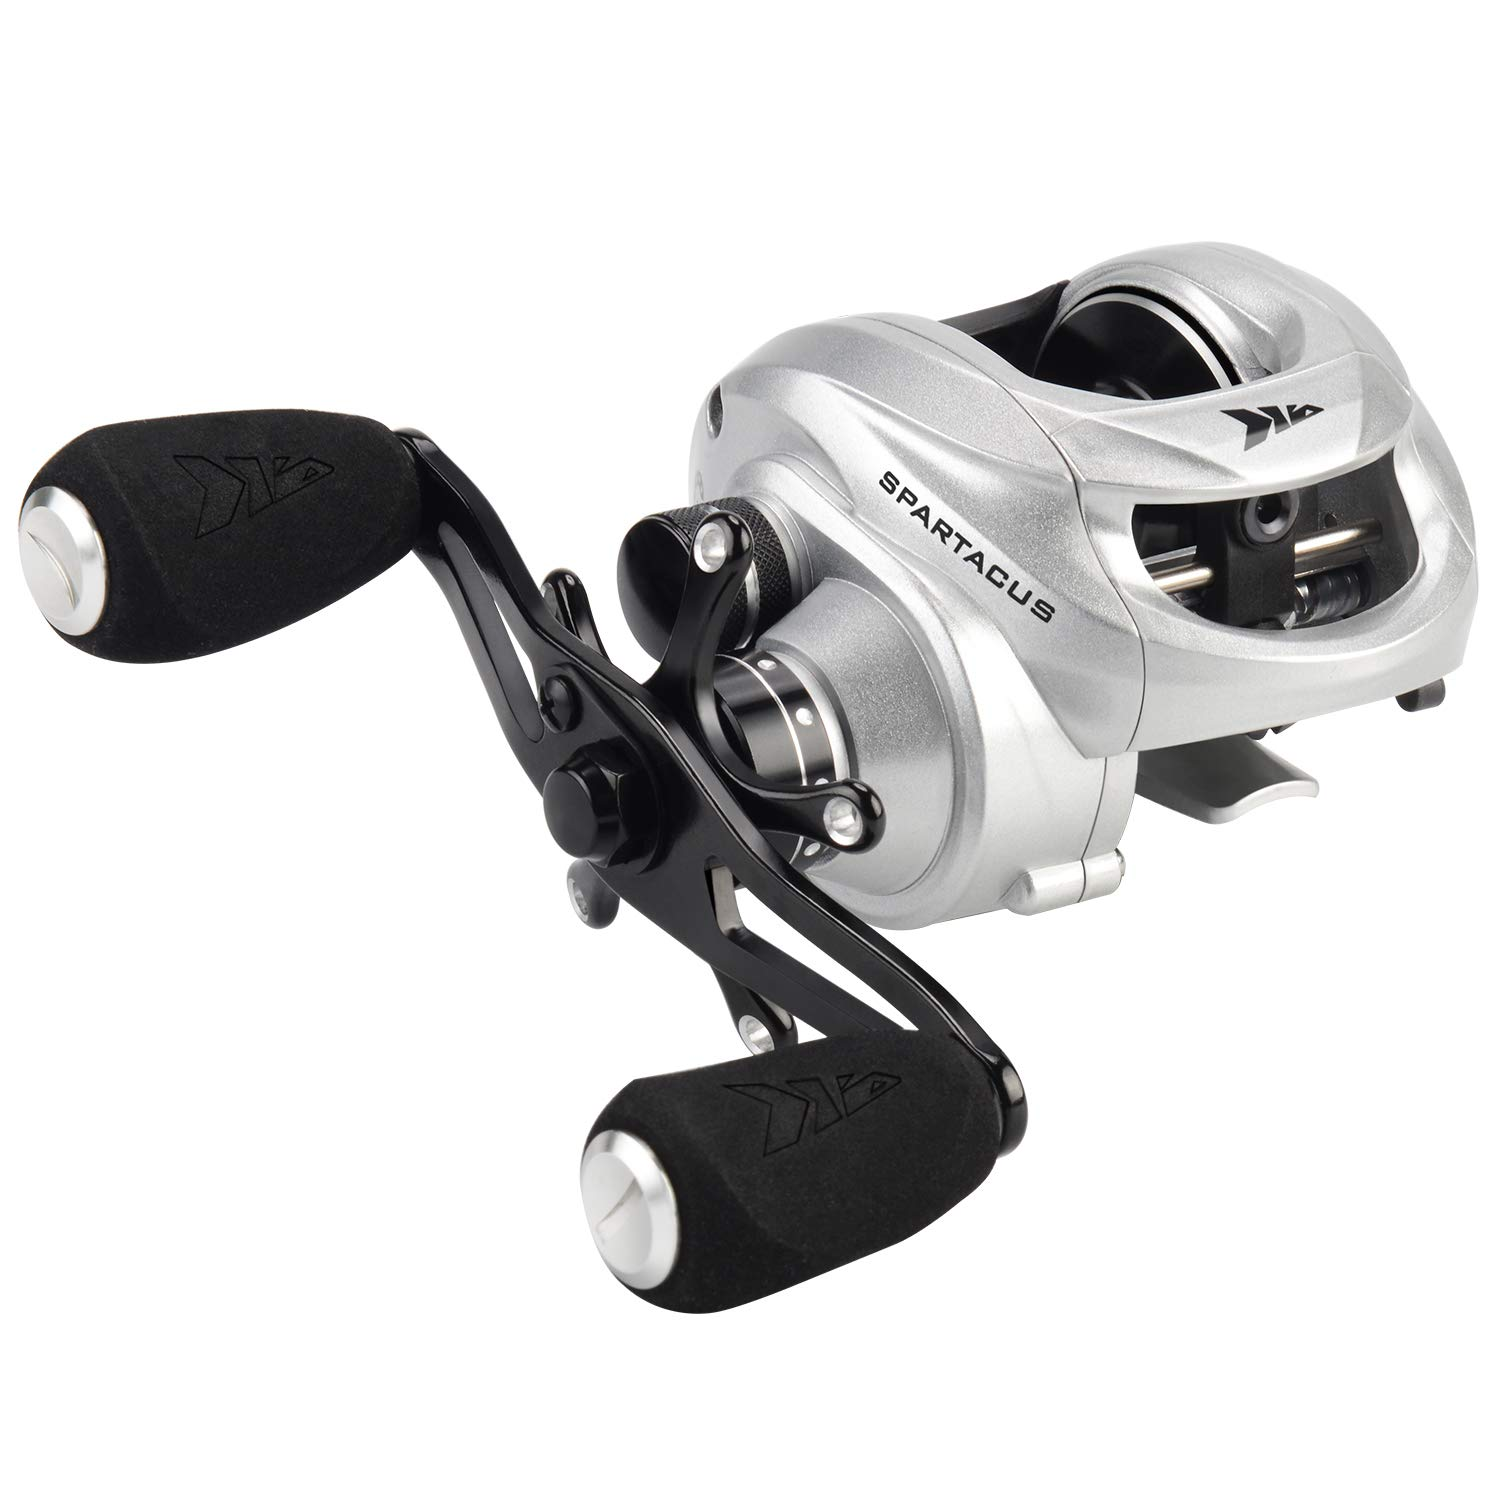 KastKing Spartacus Baitcasting Fishing Reel Ultra Smooth 17.5 LB Carbon Fiber Drag, 6.3:1 Gear Ratio,11 + 1 Shielded Ball Bearings, Rubber Cork Handle Knobs (B:Sword Silver: Right Handed Reel)